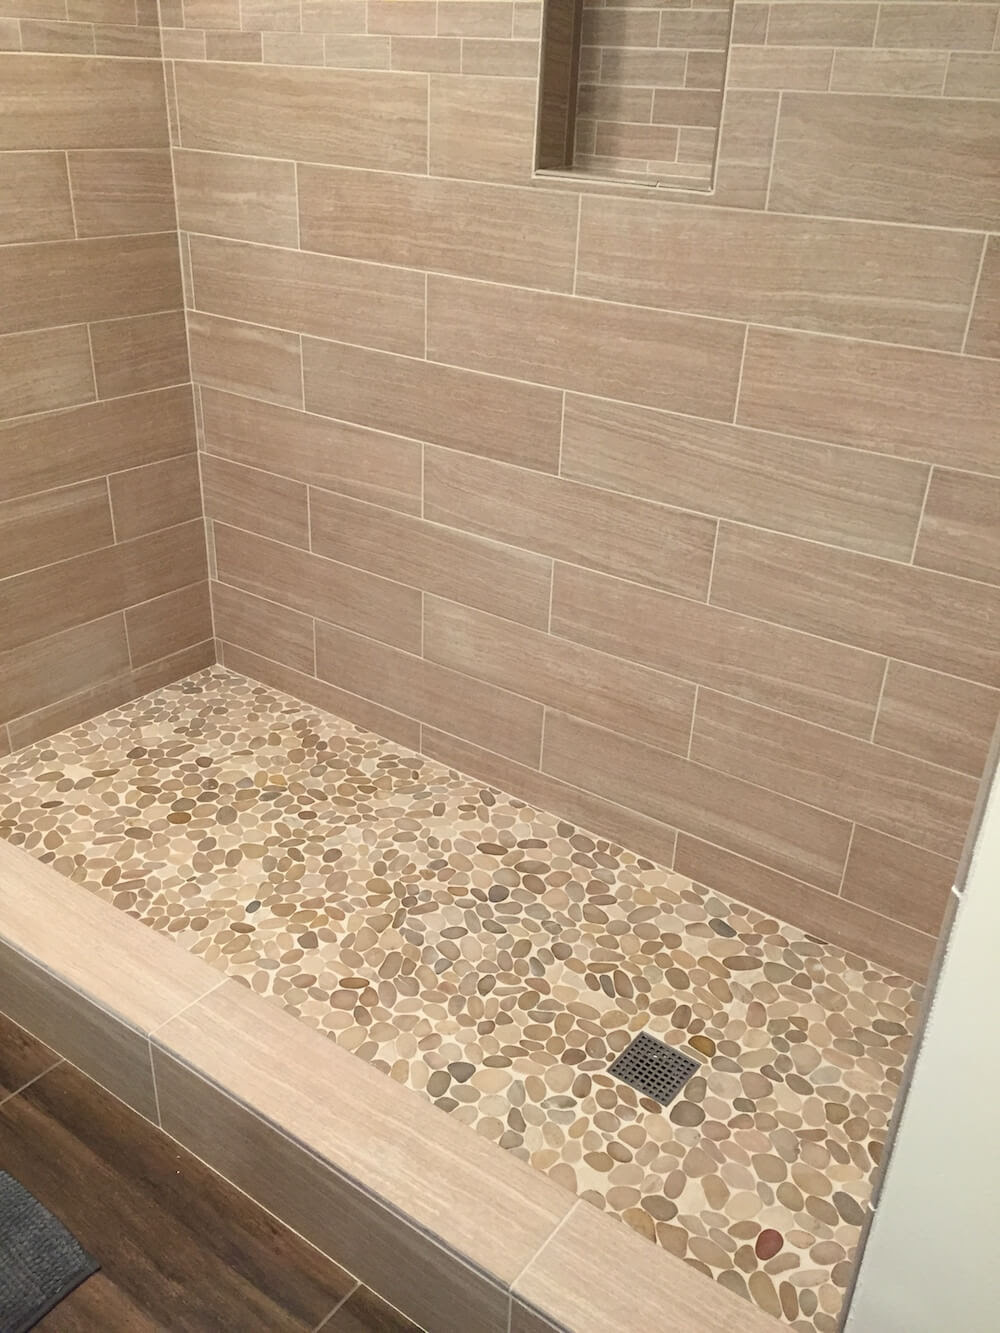 2017 Cost To Tile A Shower How Much To Tile A Shower My Home Inspiration